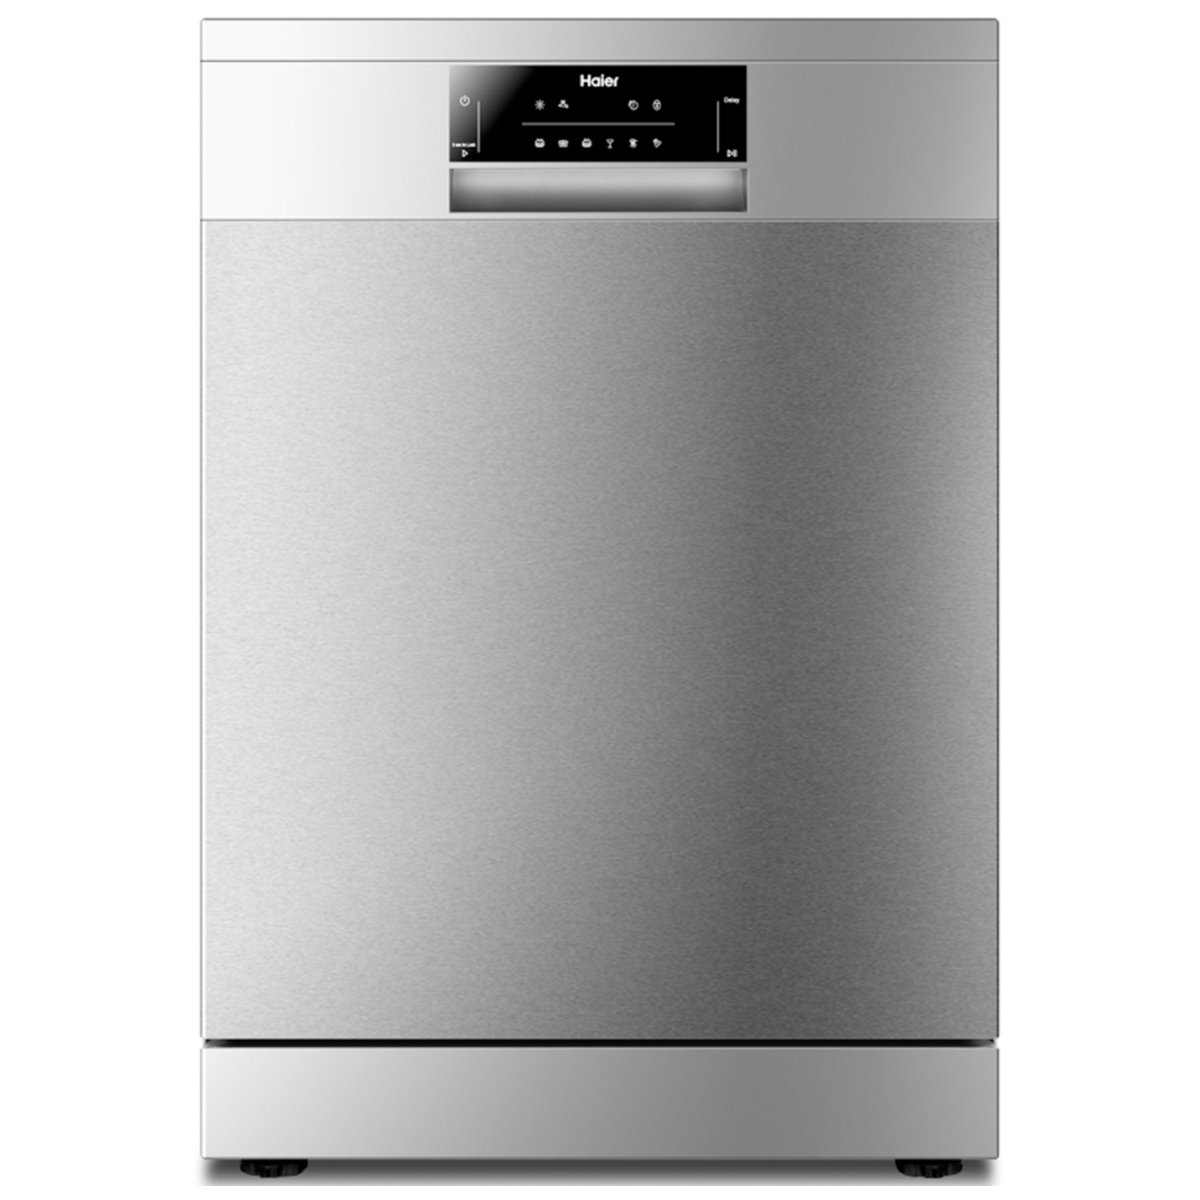 Haier HDW13G1X Freestanding Dishwasher